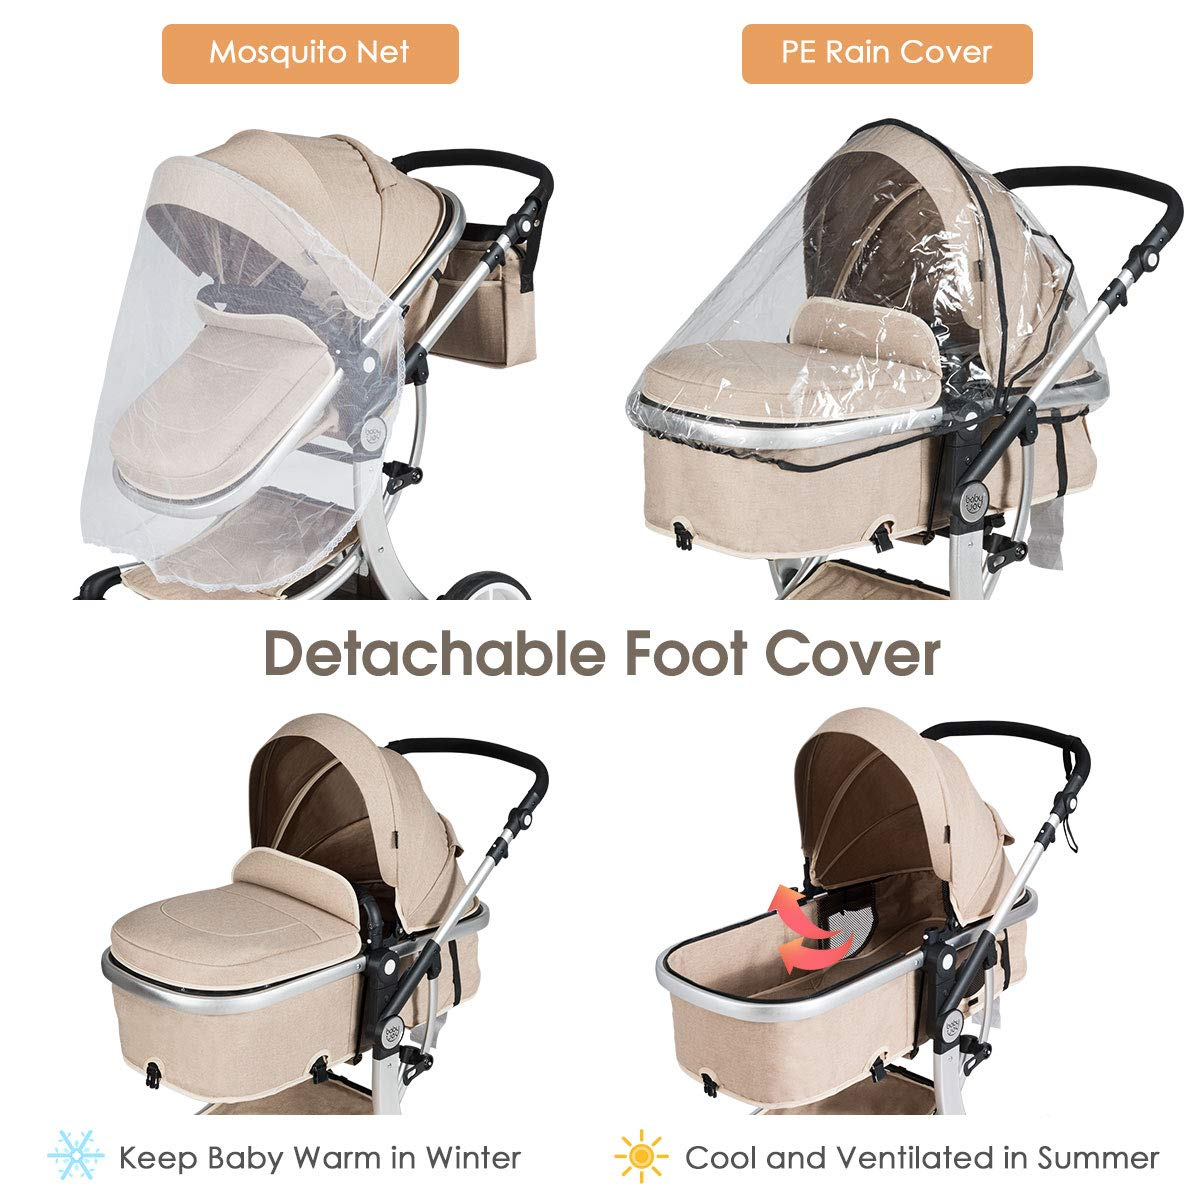 BABY JOY Baby Stroller 2-in-1 Convertible Foldable ...